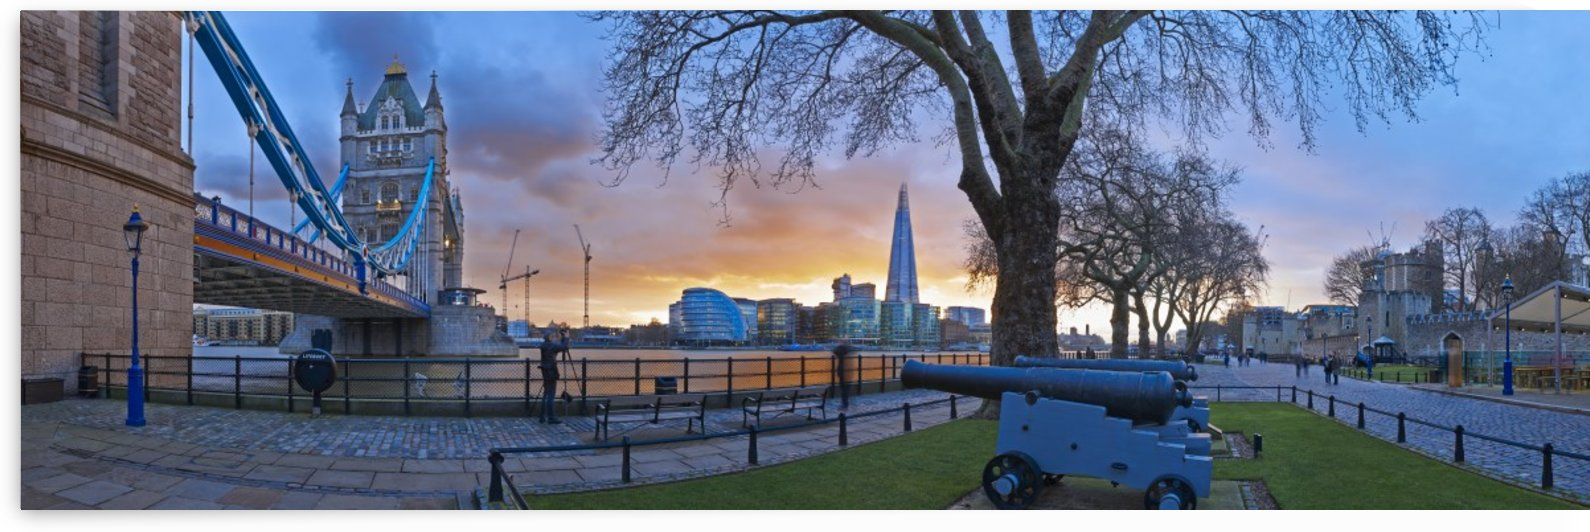 The Shard from Tower Bridge by Adrian Brockwell